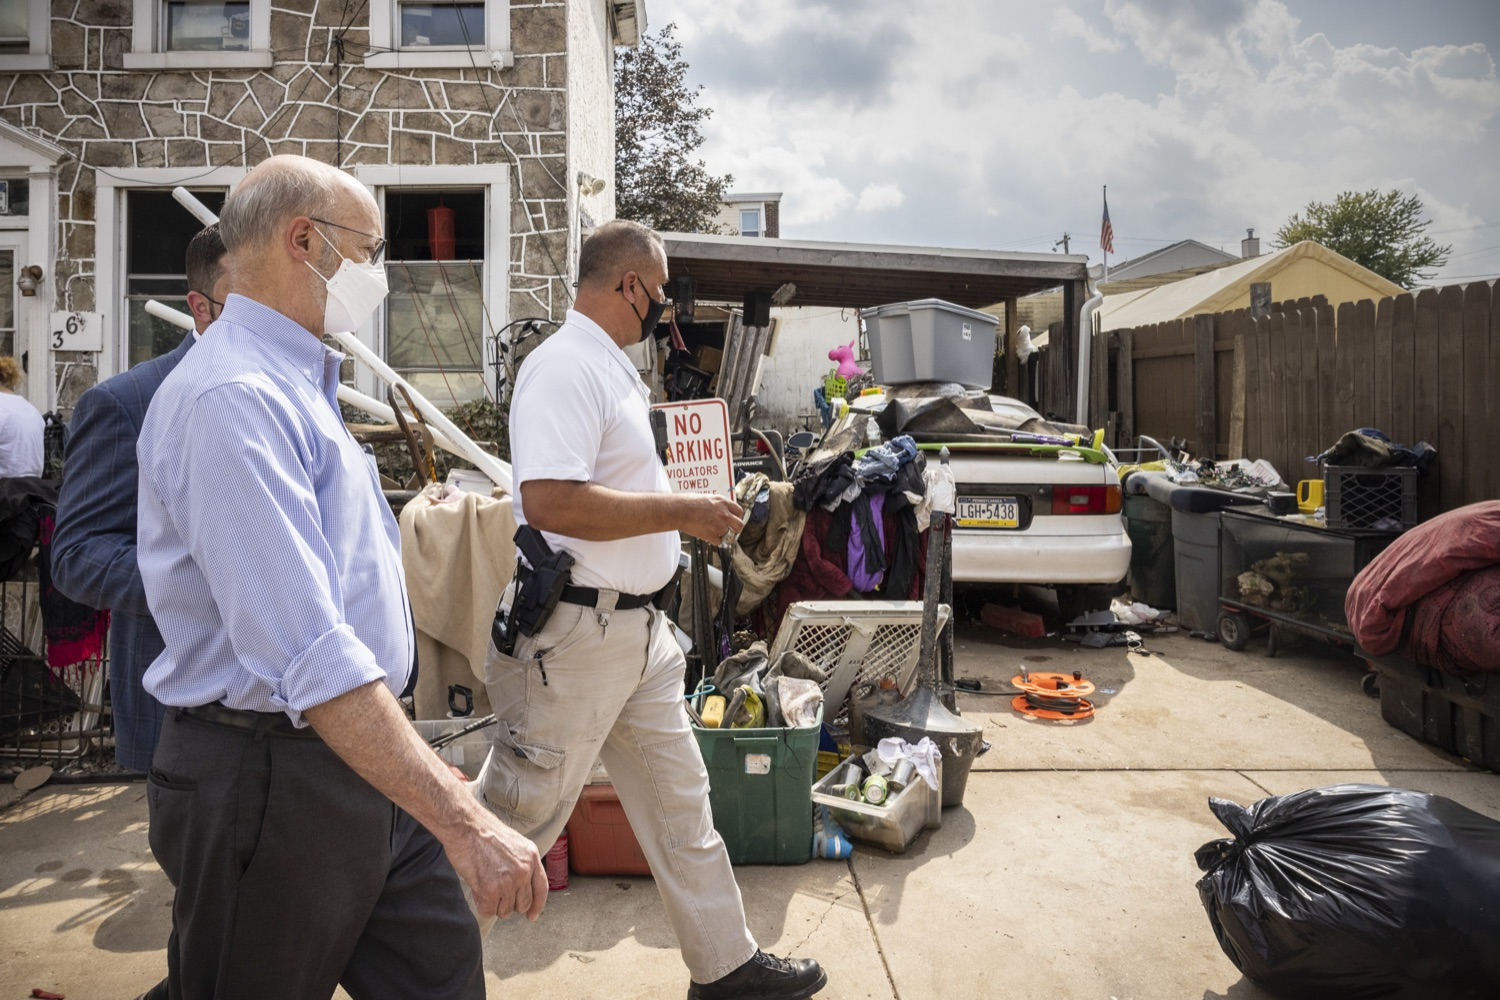 """<a href=""""https://filesource.wostreaming.net/commonwealthofpa/photo/19109_gov_stormDamage_dz_002.jpg"""" target=""""_blank"""">⇣Download Photo<br></a>Pennsylvania Governor Tom Wolf touring storm damage with Chief Todd J. Bereda,  Chief of Police, Emergency Management Coordinator Bridgeport PA.   , Governor Wolf visited the Borough of Bridgeport to tour some of the areas affected by the remnants of Ida. The governor, joined by local officials, viewed and discussed the impact to damaged areas, including businesses, homes and infrastructure. Bridgeport, PA - September 08, 2021"""